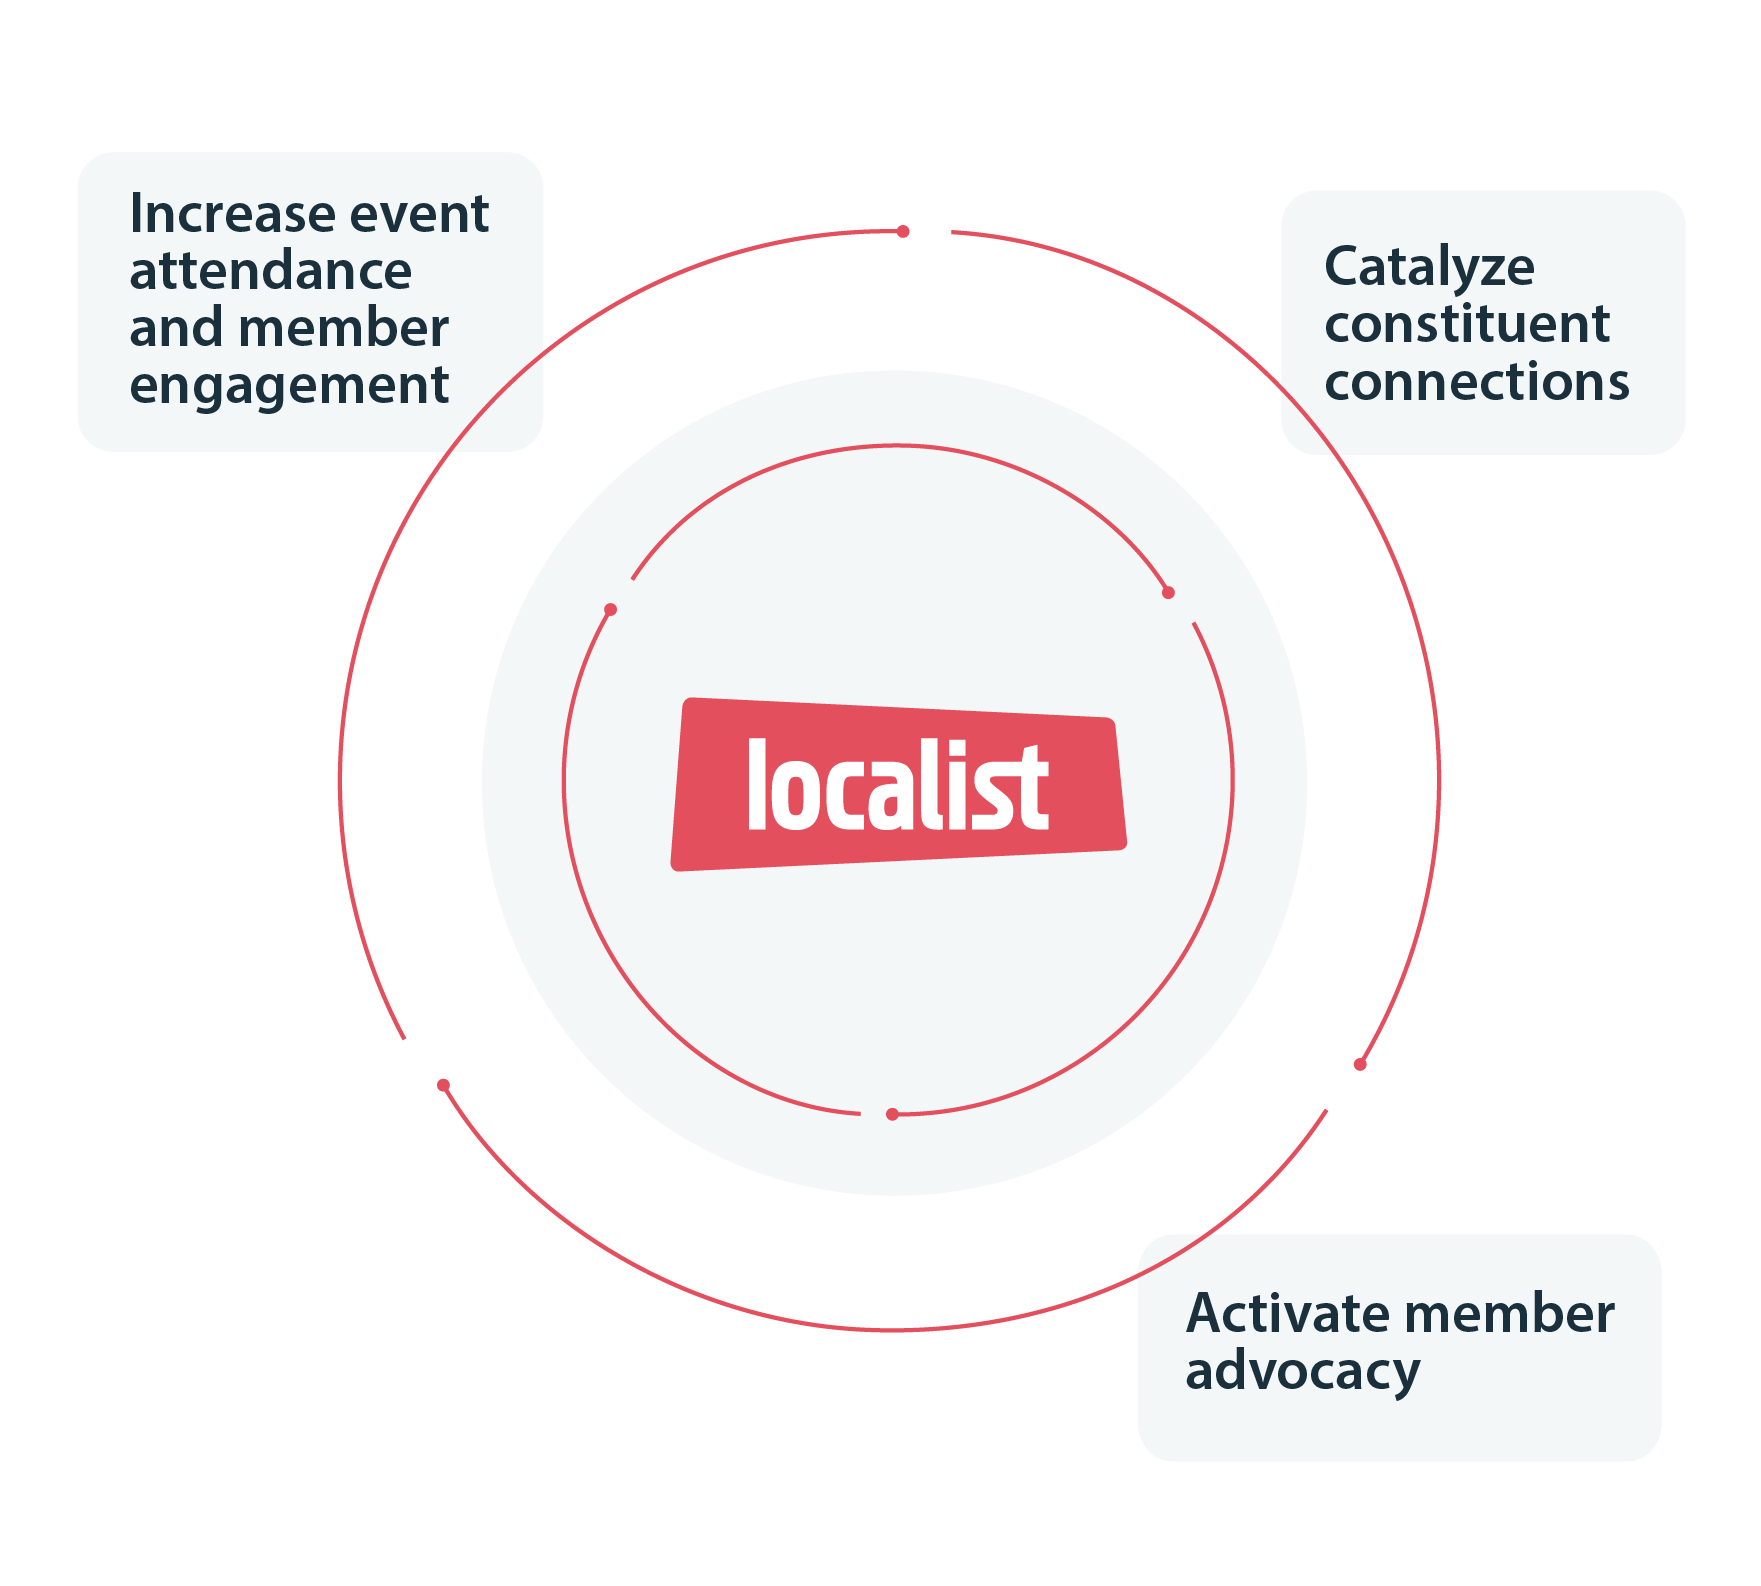 Activate member advocacy by increasing member attendance and member engagement